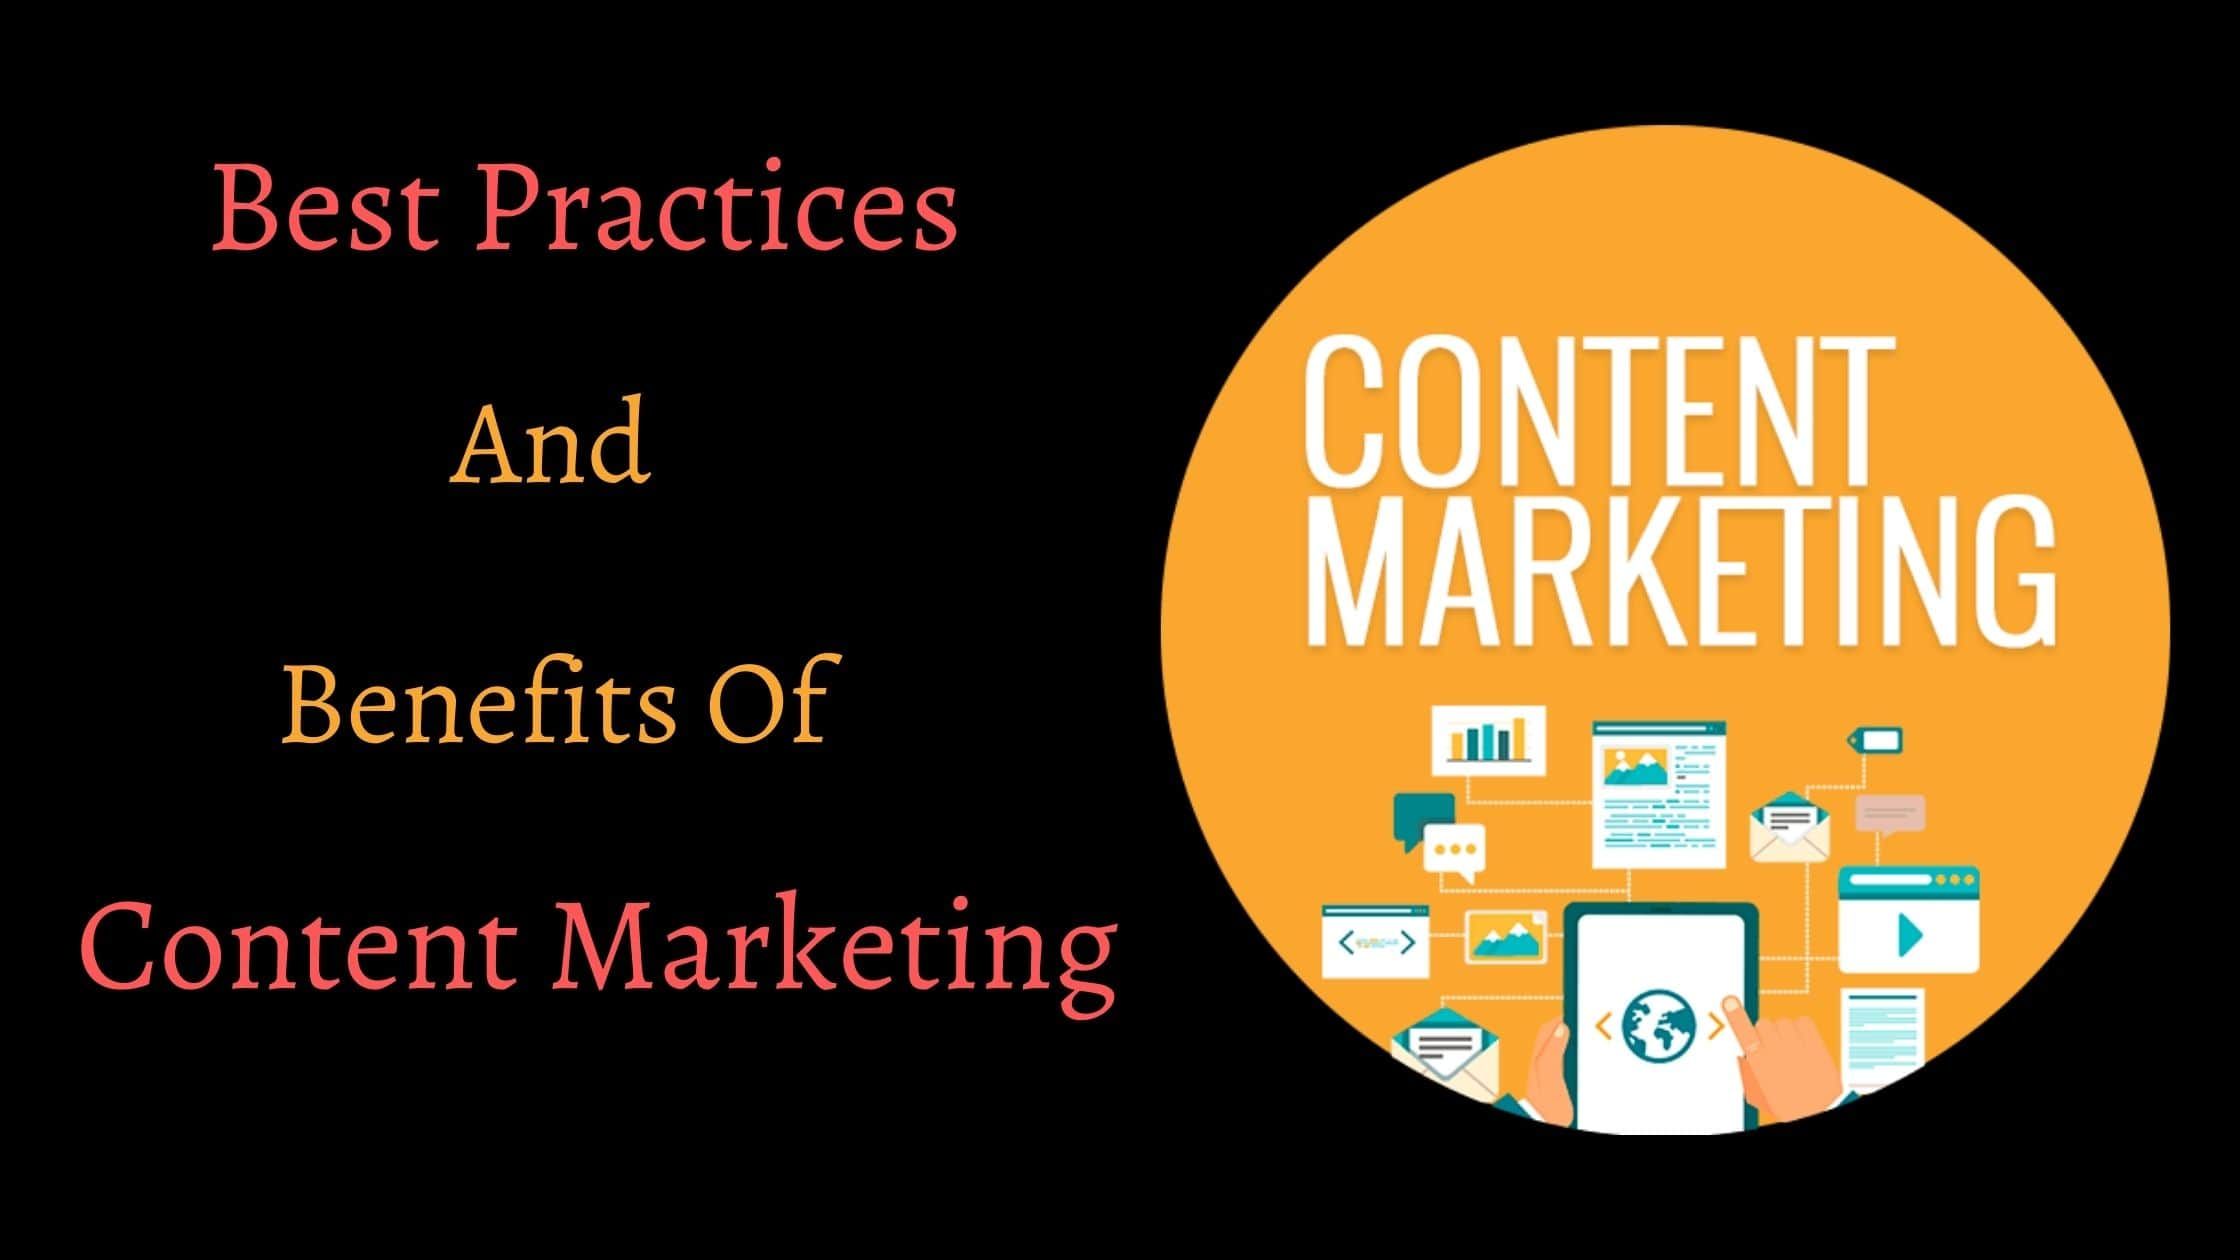 Best Practices And Benefits Of Content Marketing